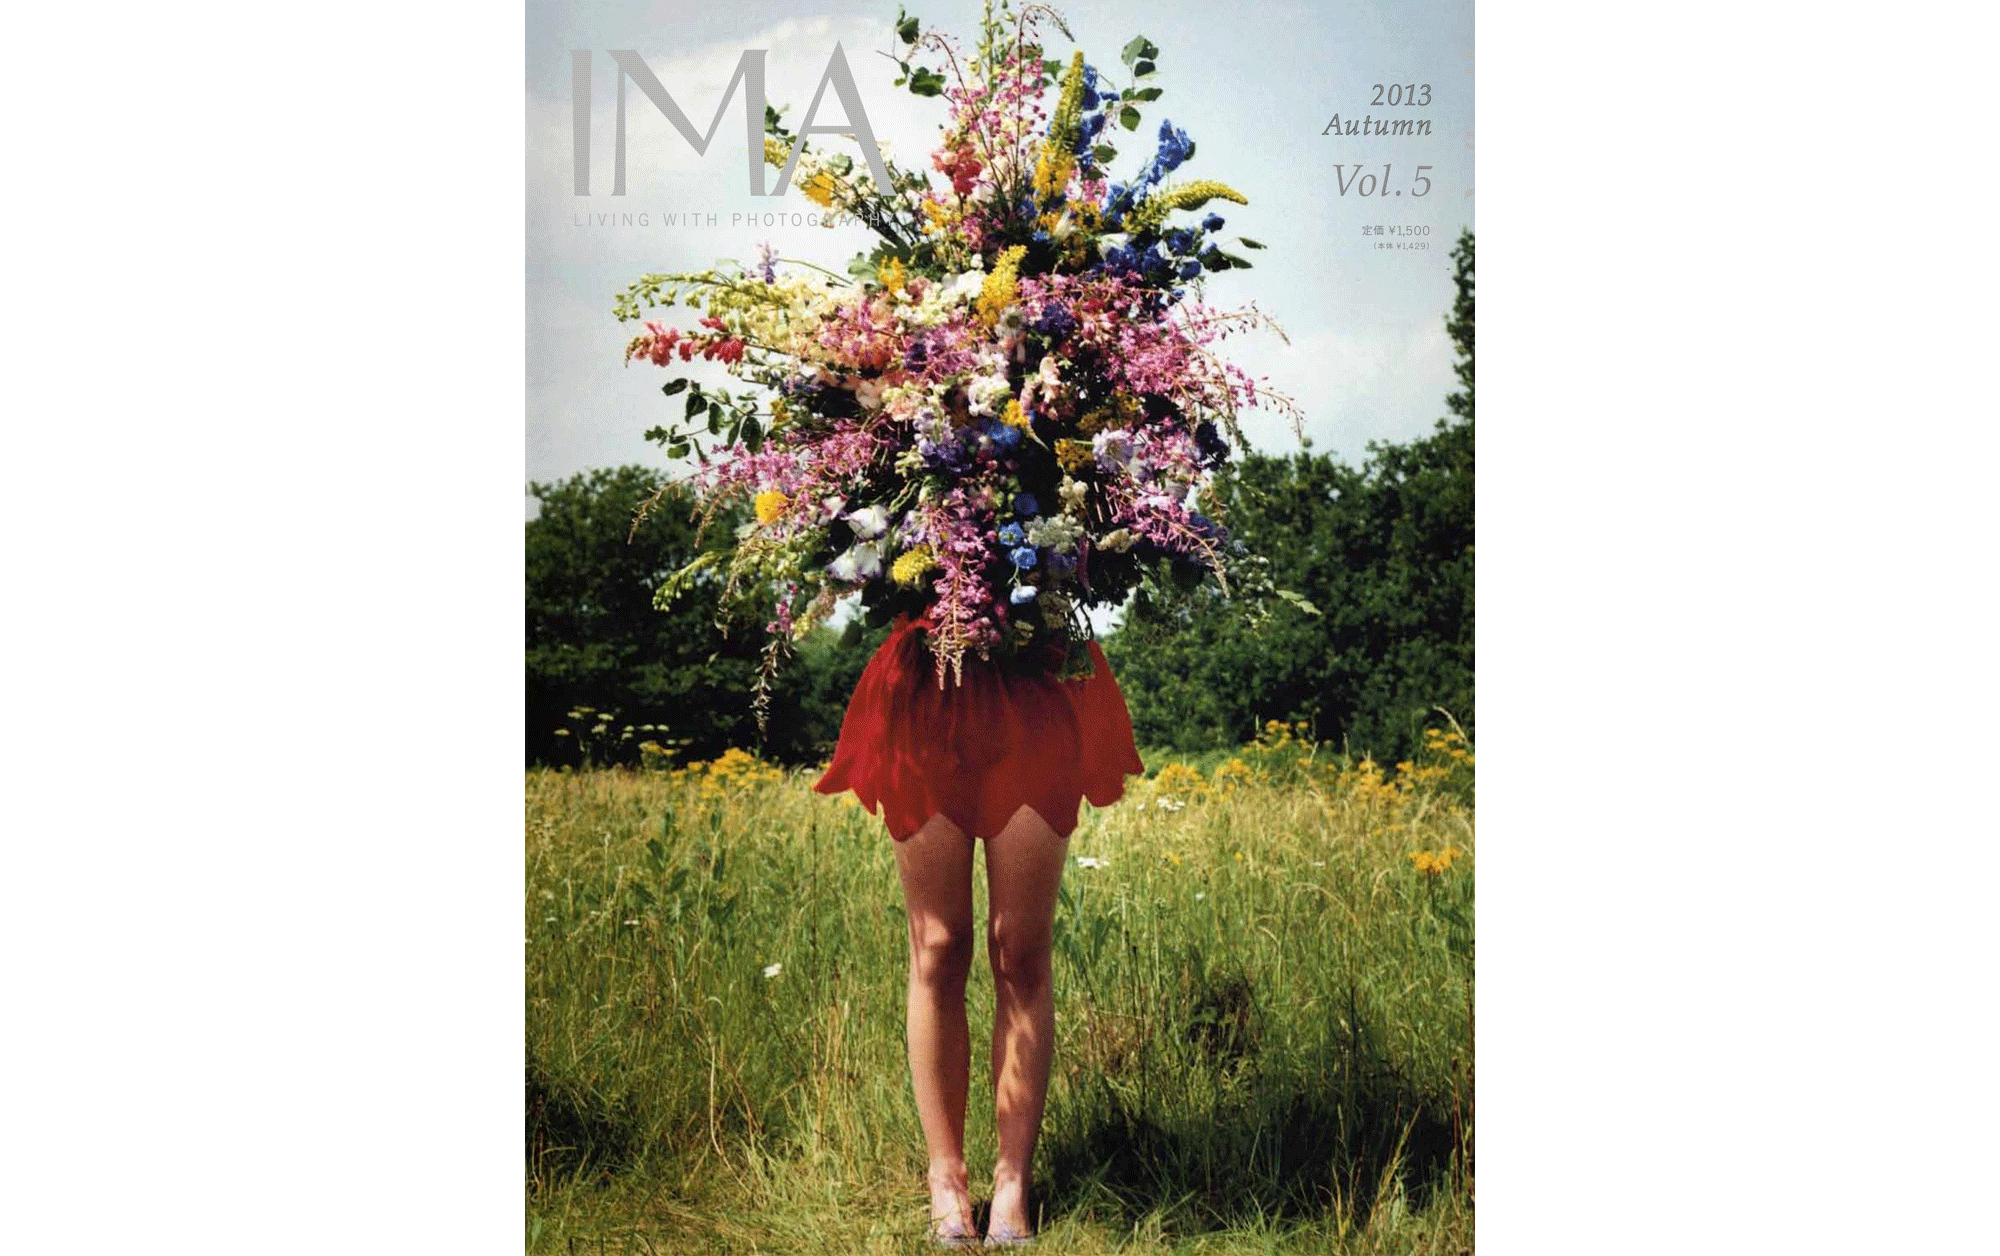 IMA 2013 Autumn Vol.5